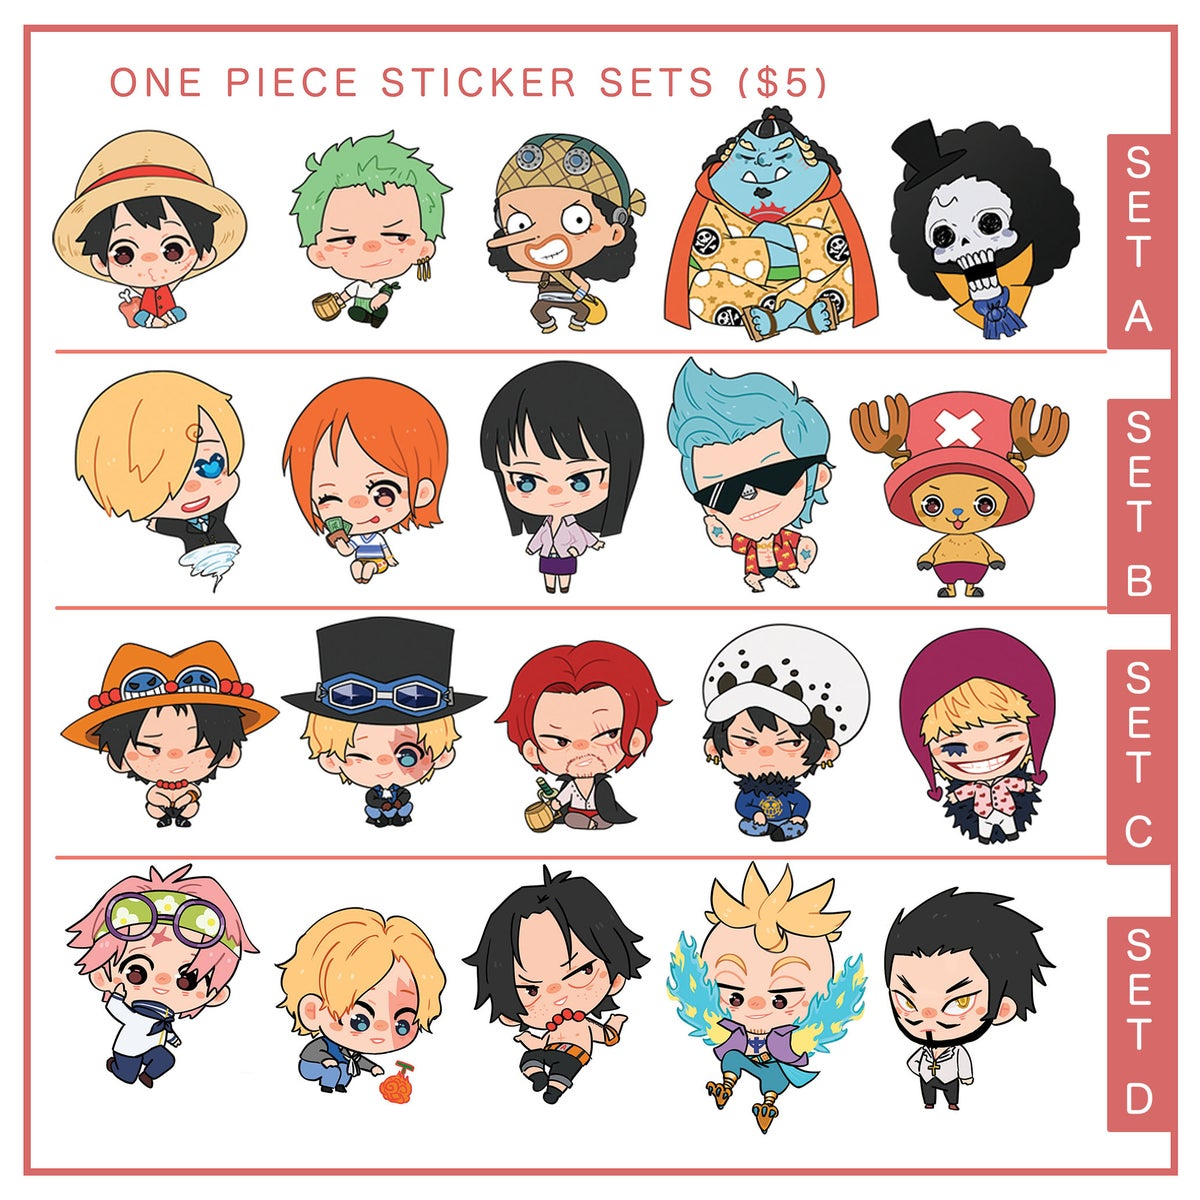 Image of one piece sticker sets